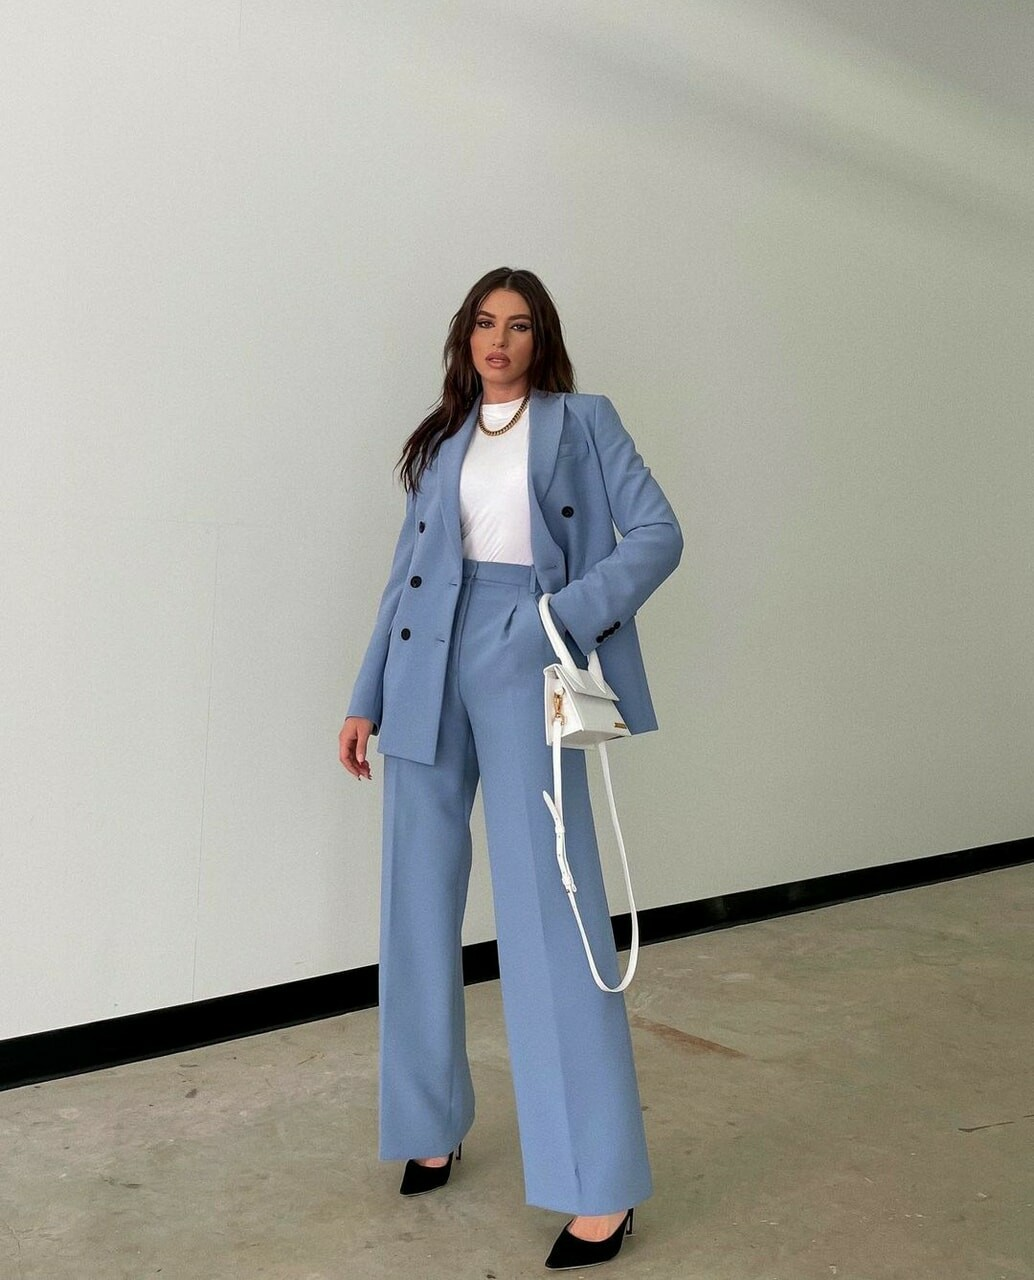 fashion and baby blue image